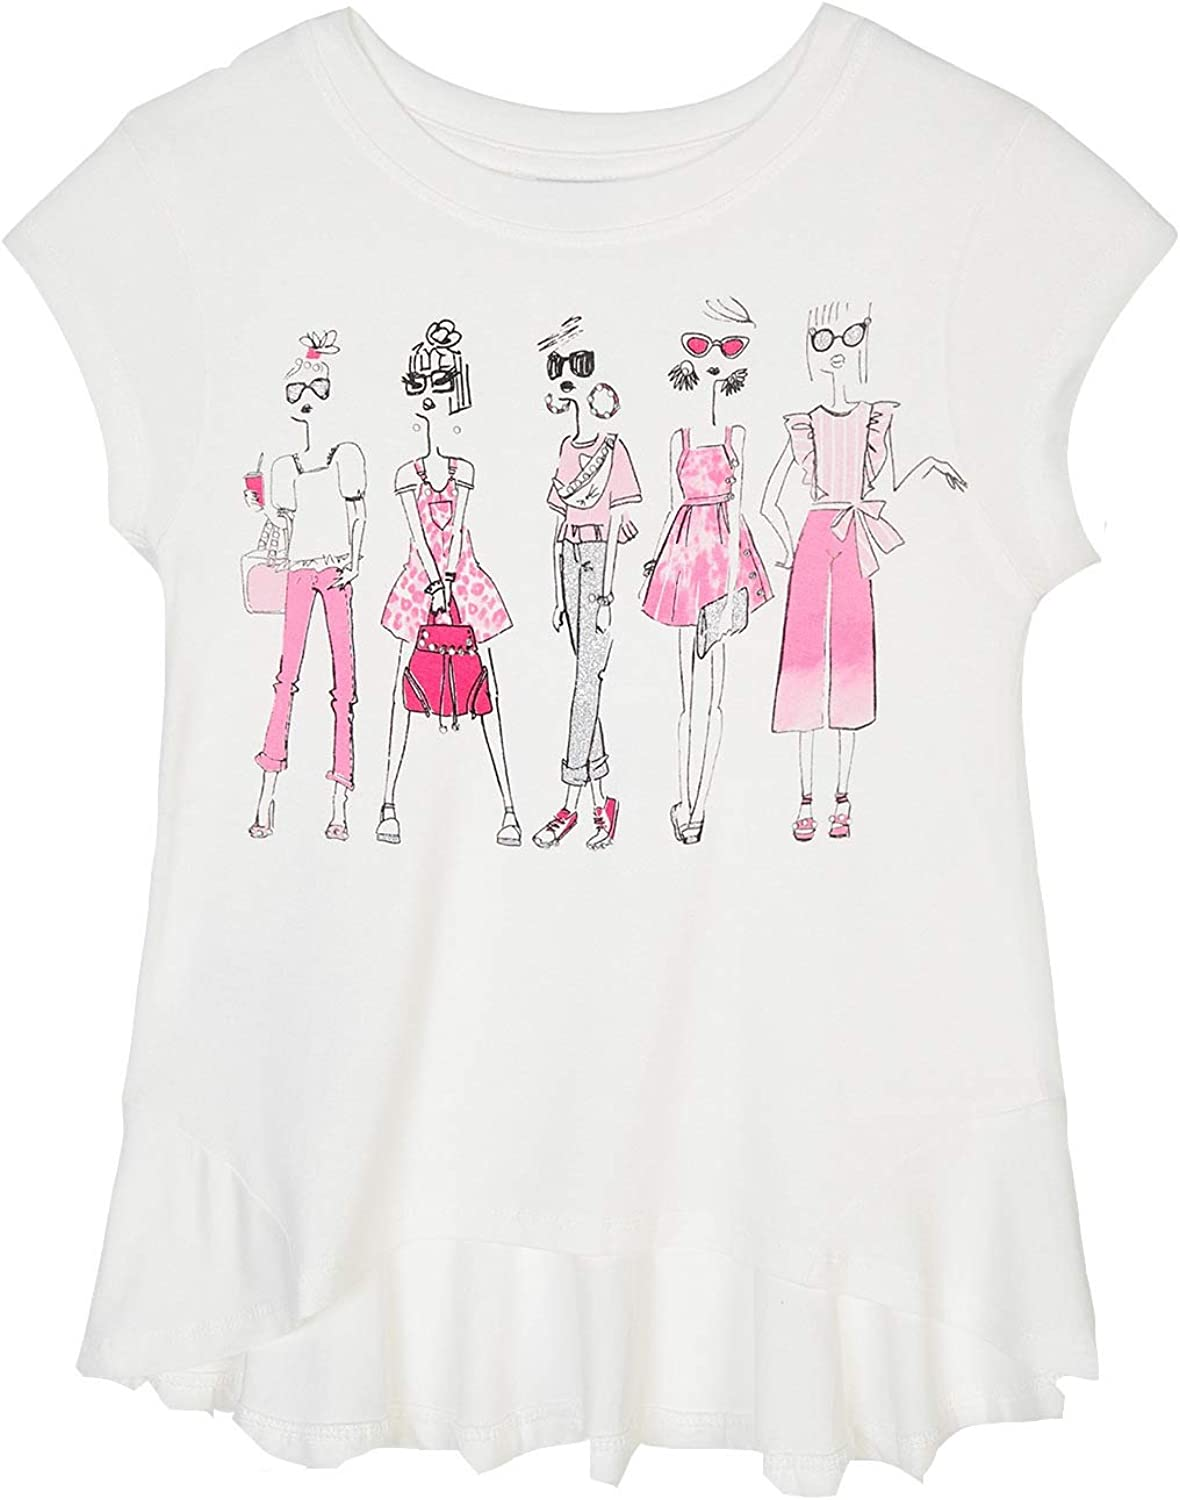 Mayoral - S/s Girl t-Shirt for Girls - 6005, Pink